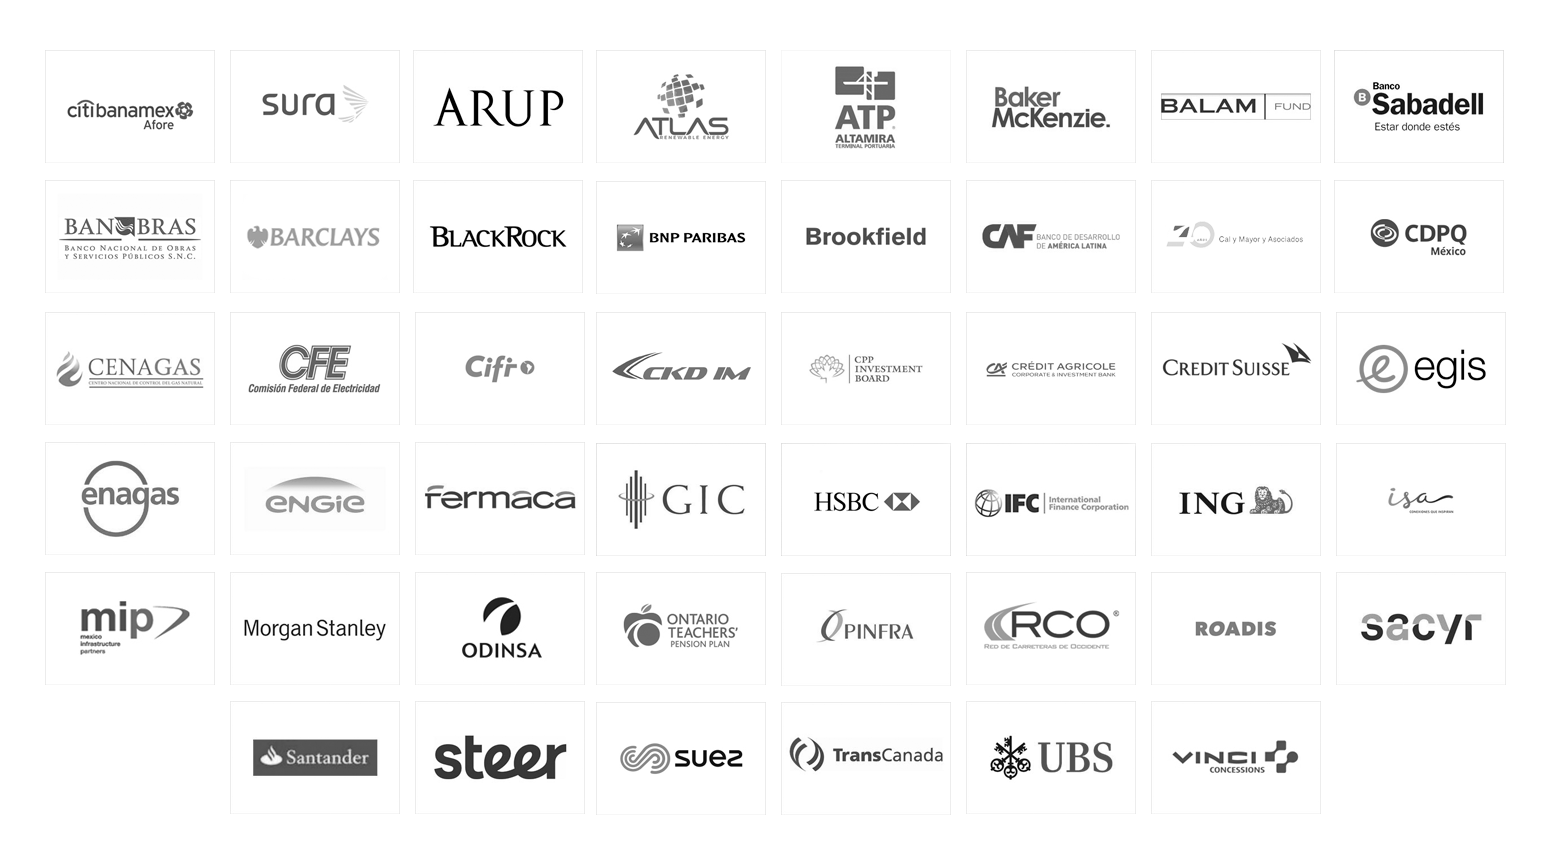 Some companies that participated in the Infra Mexico GRI